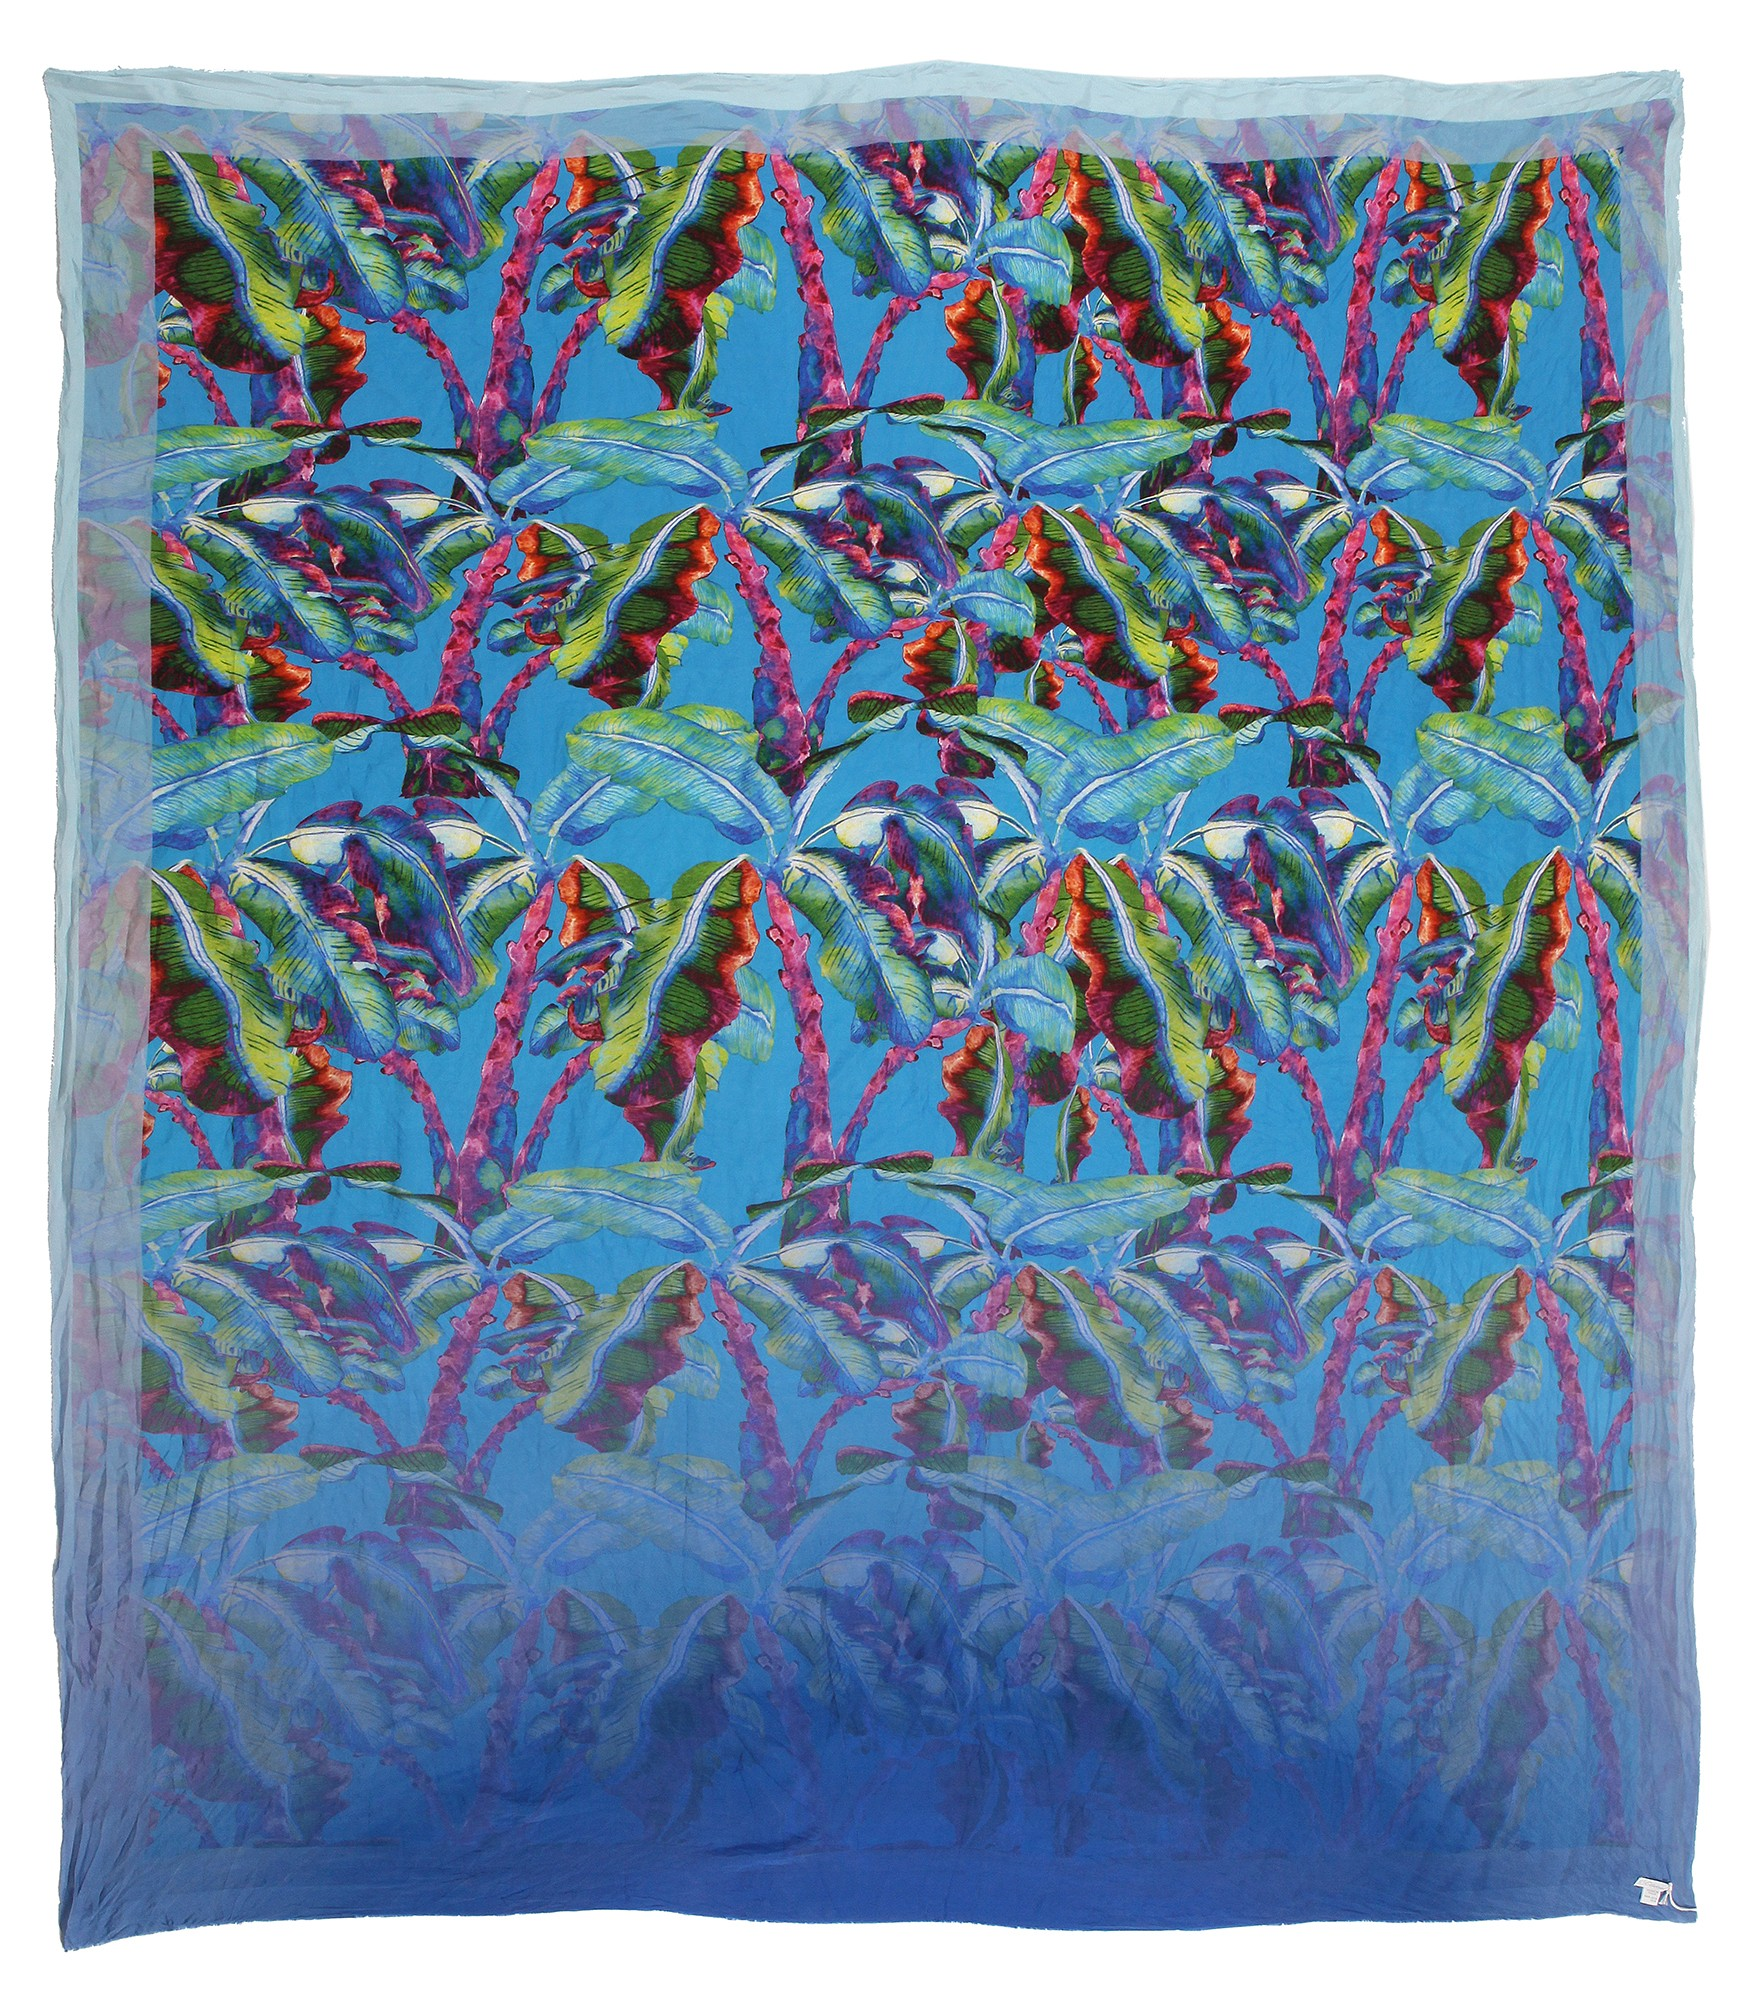 084b653ada891 813 - Annalisa Giuntini - Silk Scarf with Colored Leaves - Scarves and  Foulard - Scarf of High Quality Luxury - Avvenice